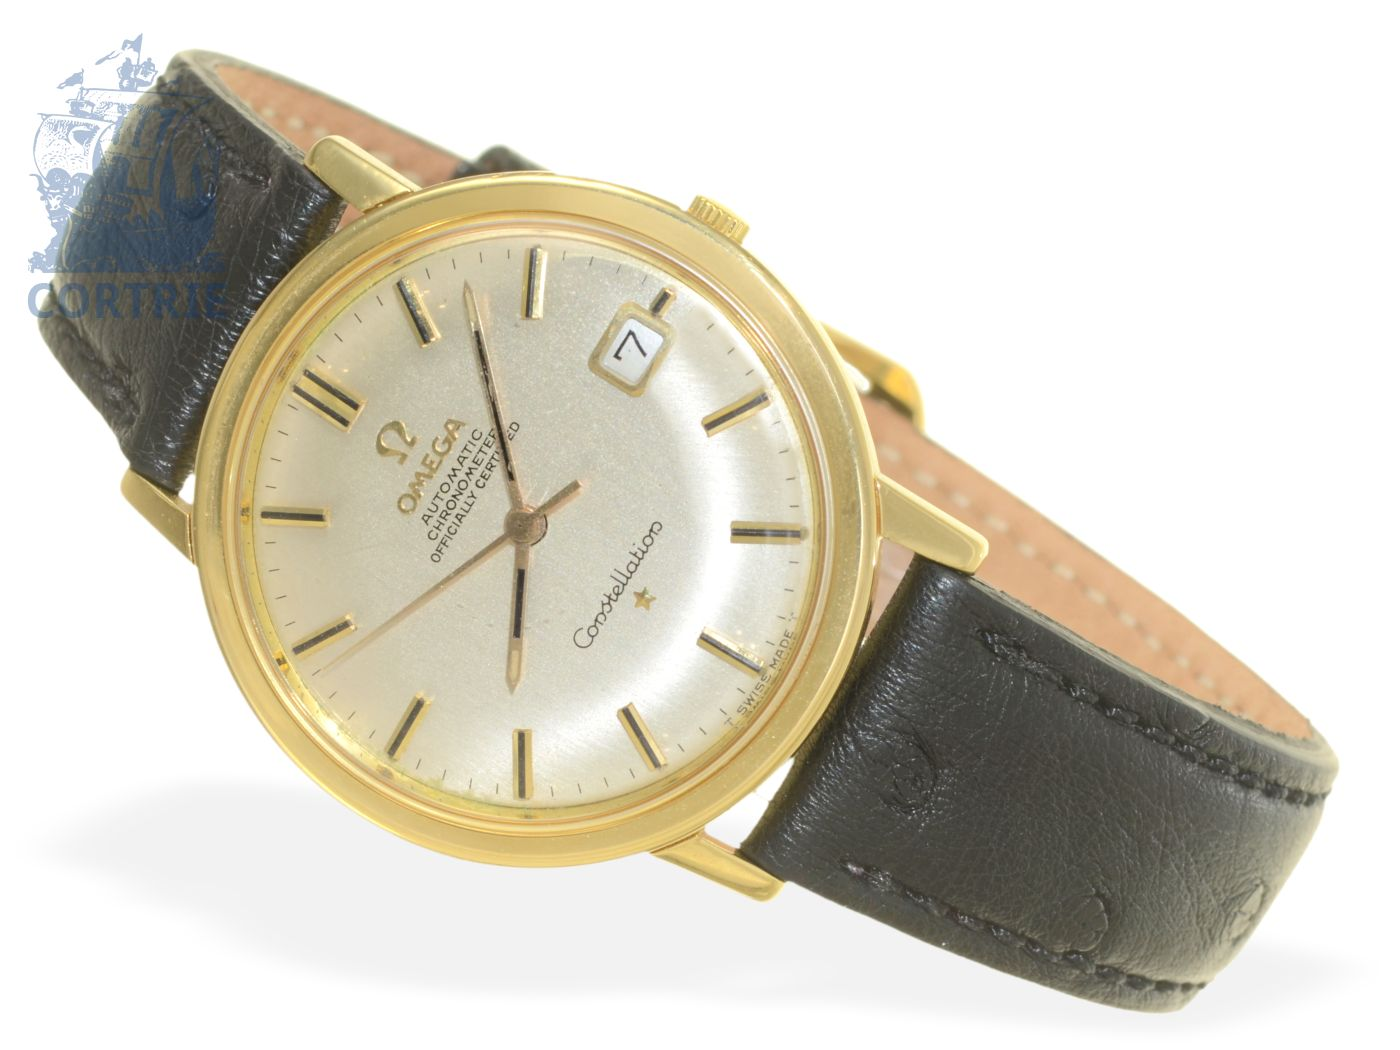 Wristwatch: 18 K gold Omega Constellation Automatic Chronometer caliber 561, from 1966-